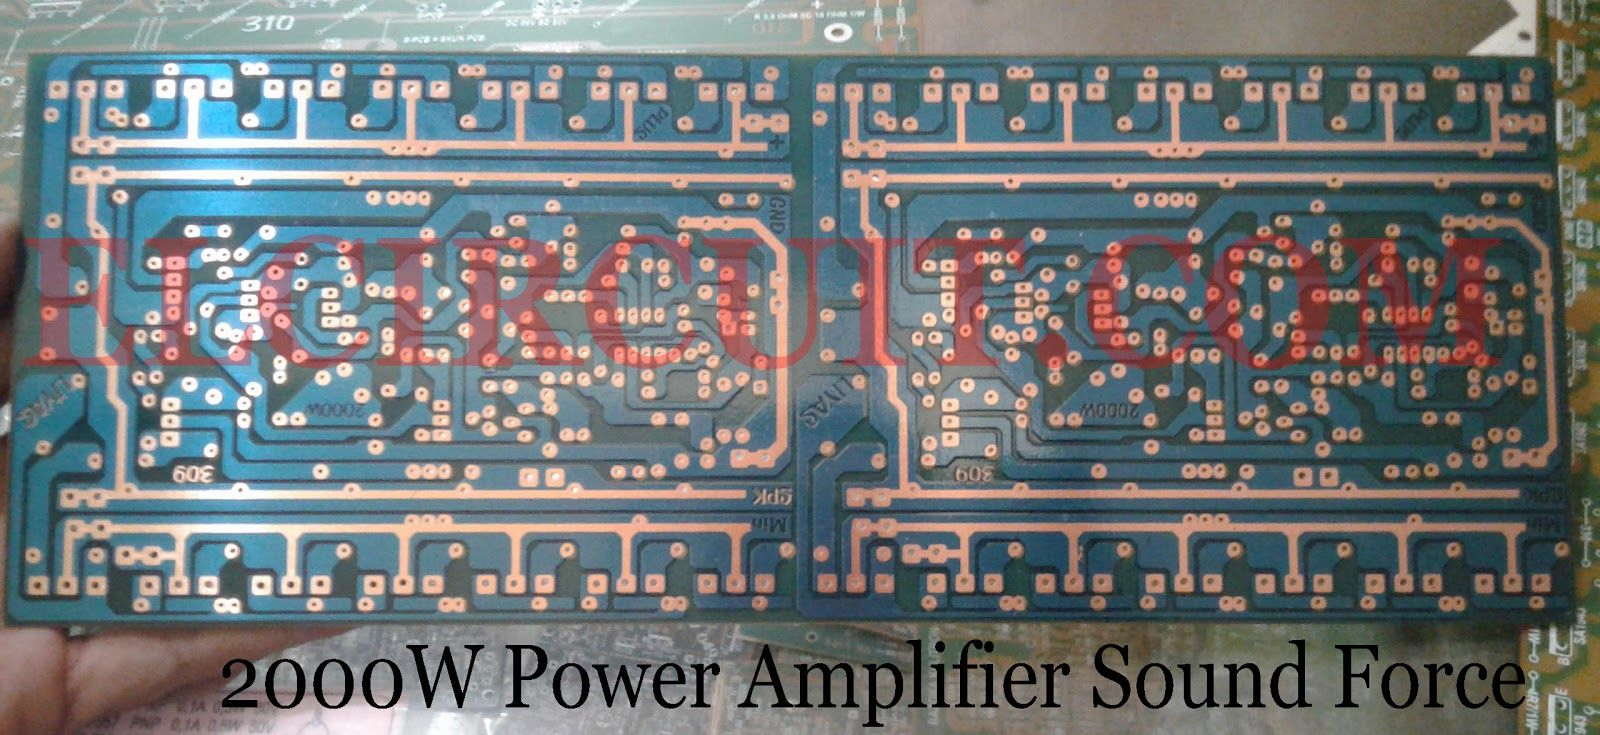 2000w Audio Amplifier Circuit Diagrams Great Installation Of Hk395 Subwoofer Wiring Diagram Get Free Image About Images Gallery